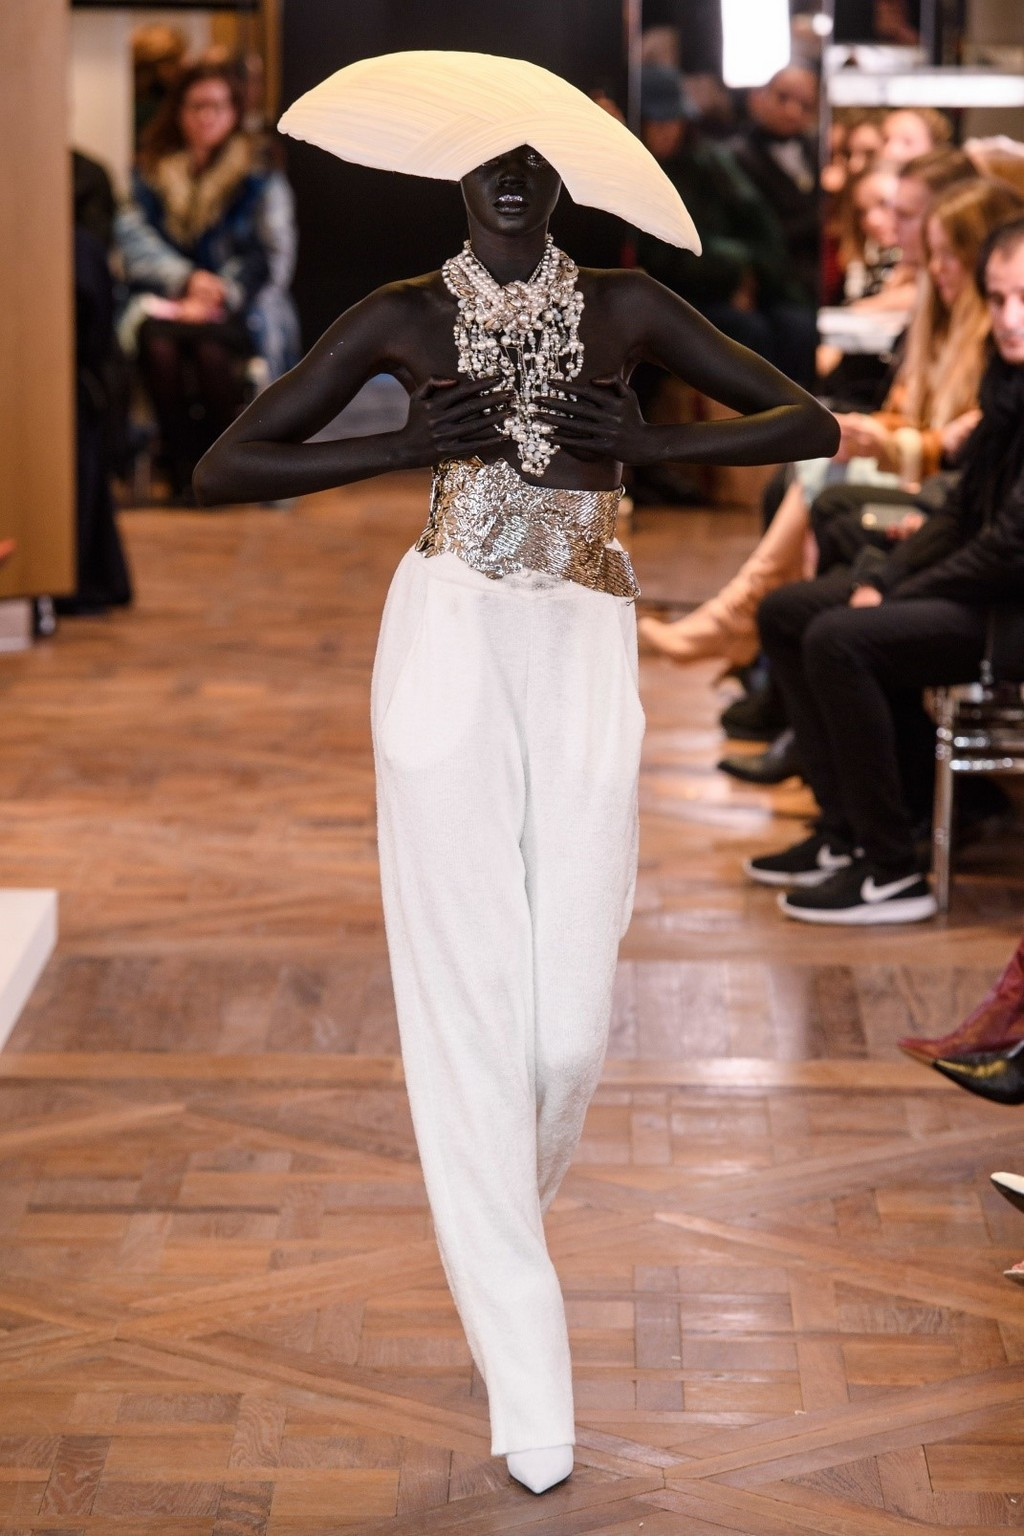 BALMAIN – HAUTE COUTURE SHOW AFTER 16 YEARS!